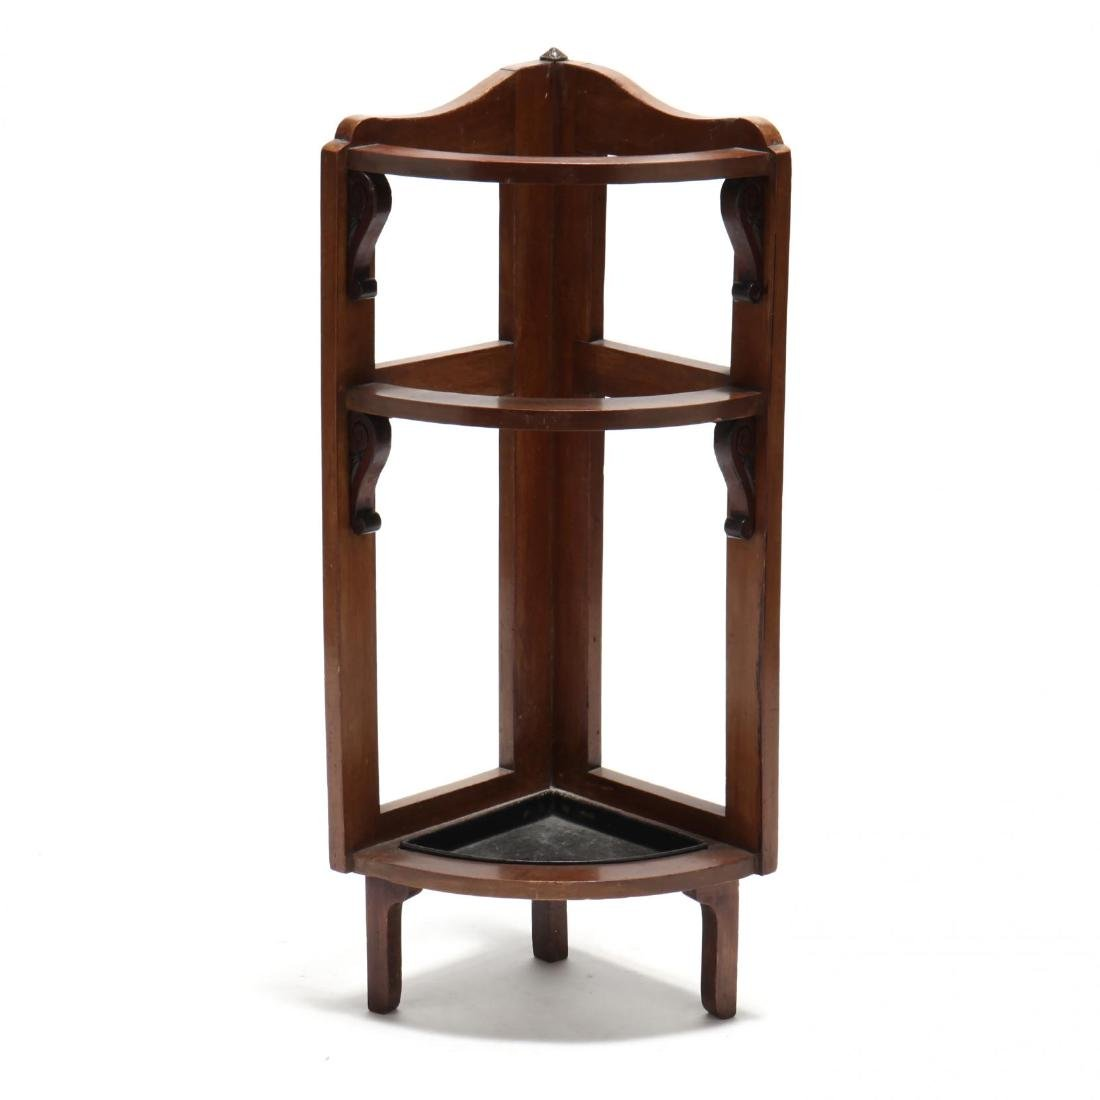 Edwardian Cane Stand With Canes - 3